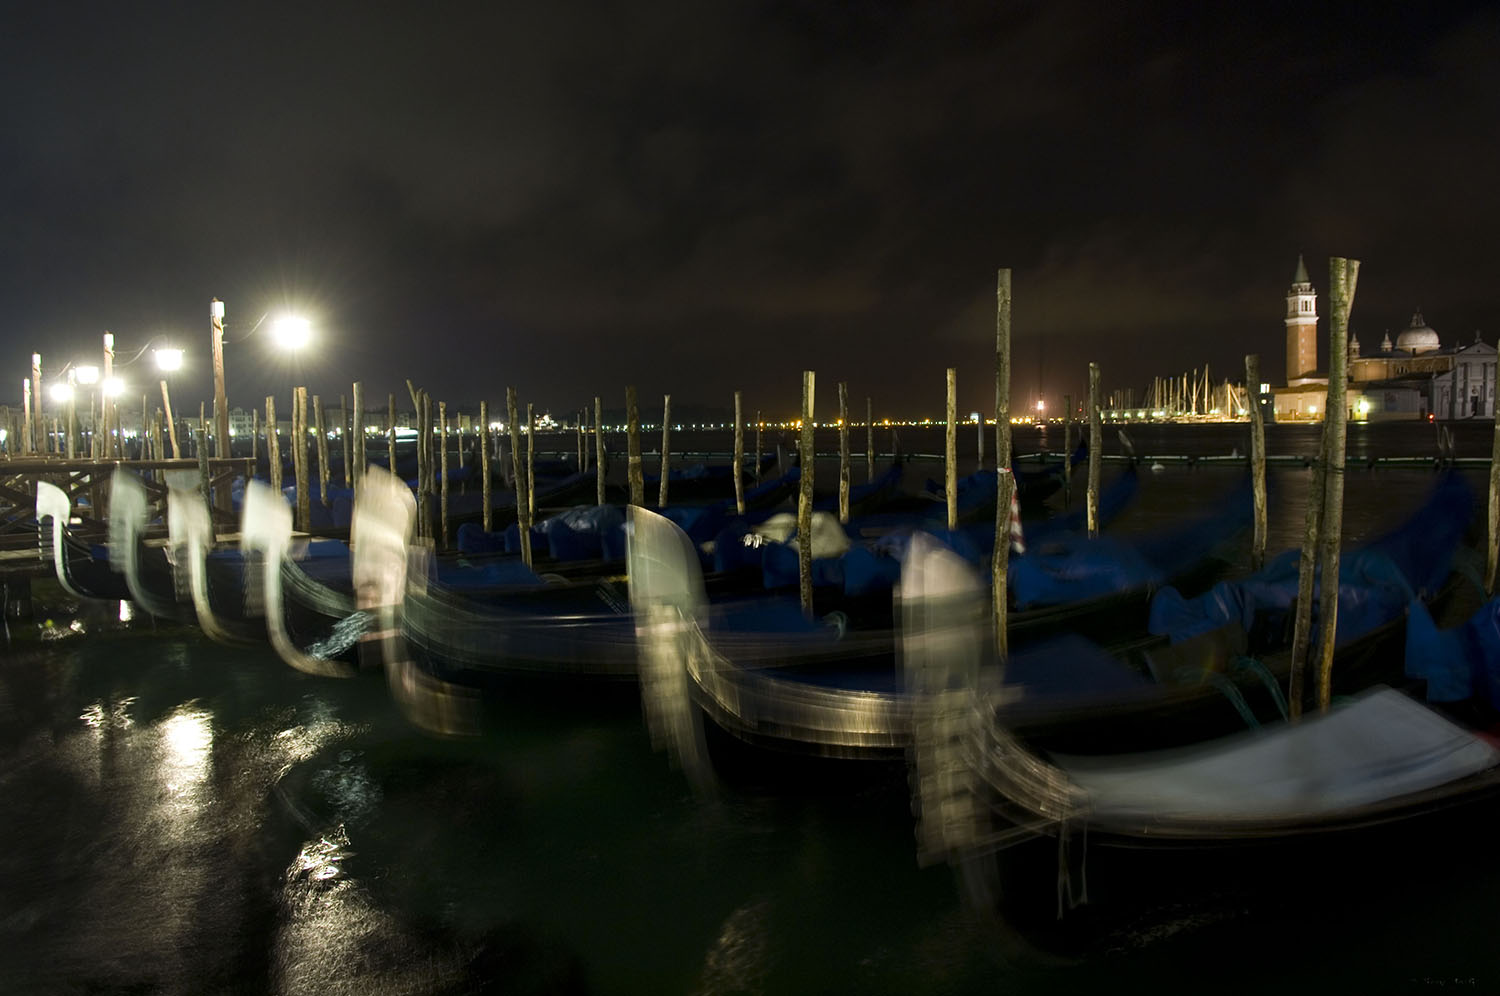 Italy / Venice / Dancing gondolas by night